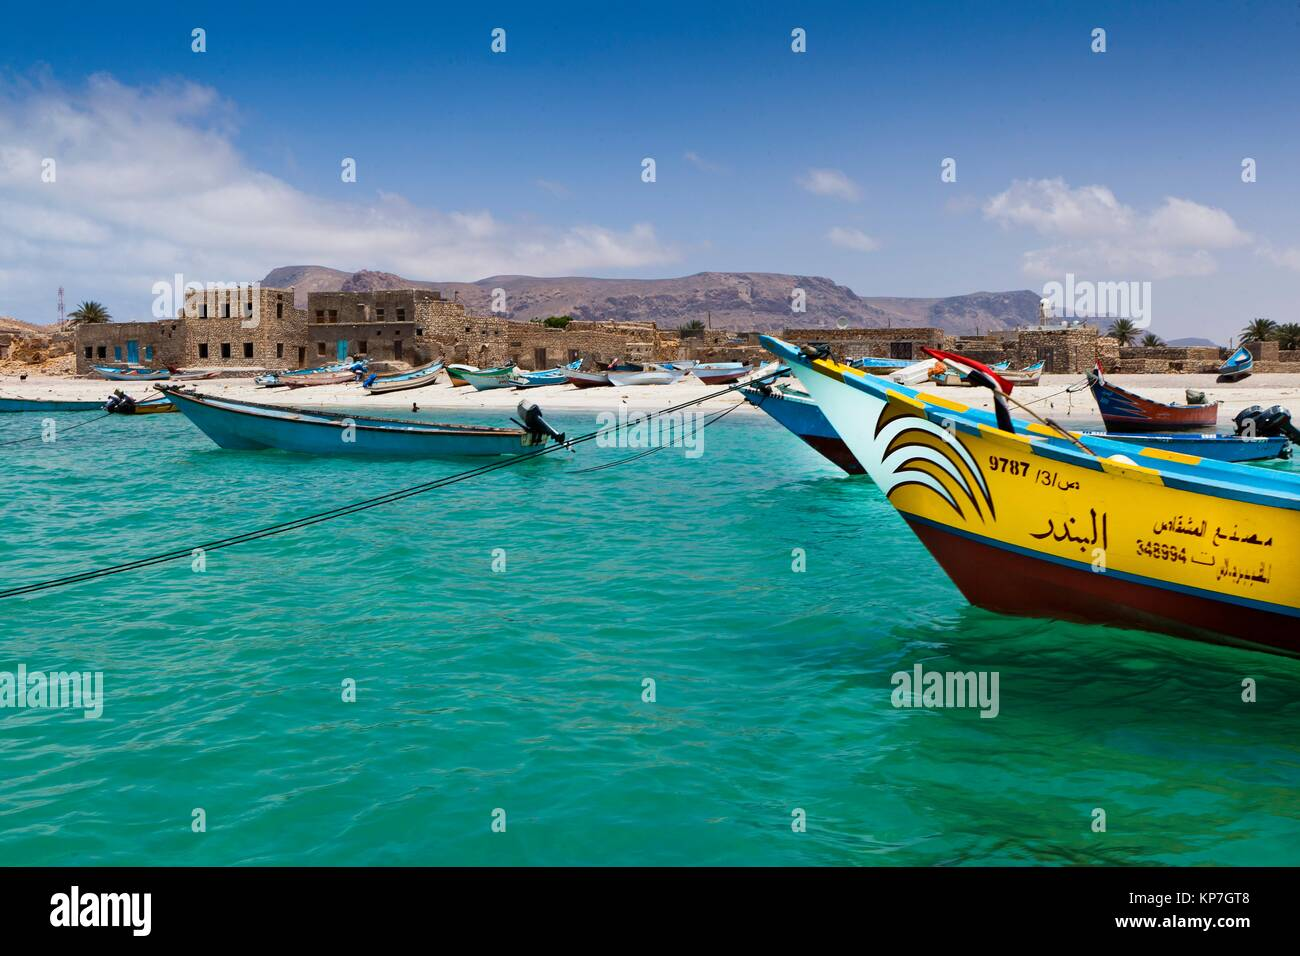 Fishboats, Qalansiyah beach, Socotra island, listed as World Heritage by UNESCO, Aden Governorate, Yemen, Arabia, - Stock Image